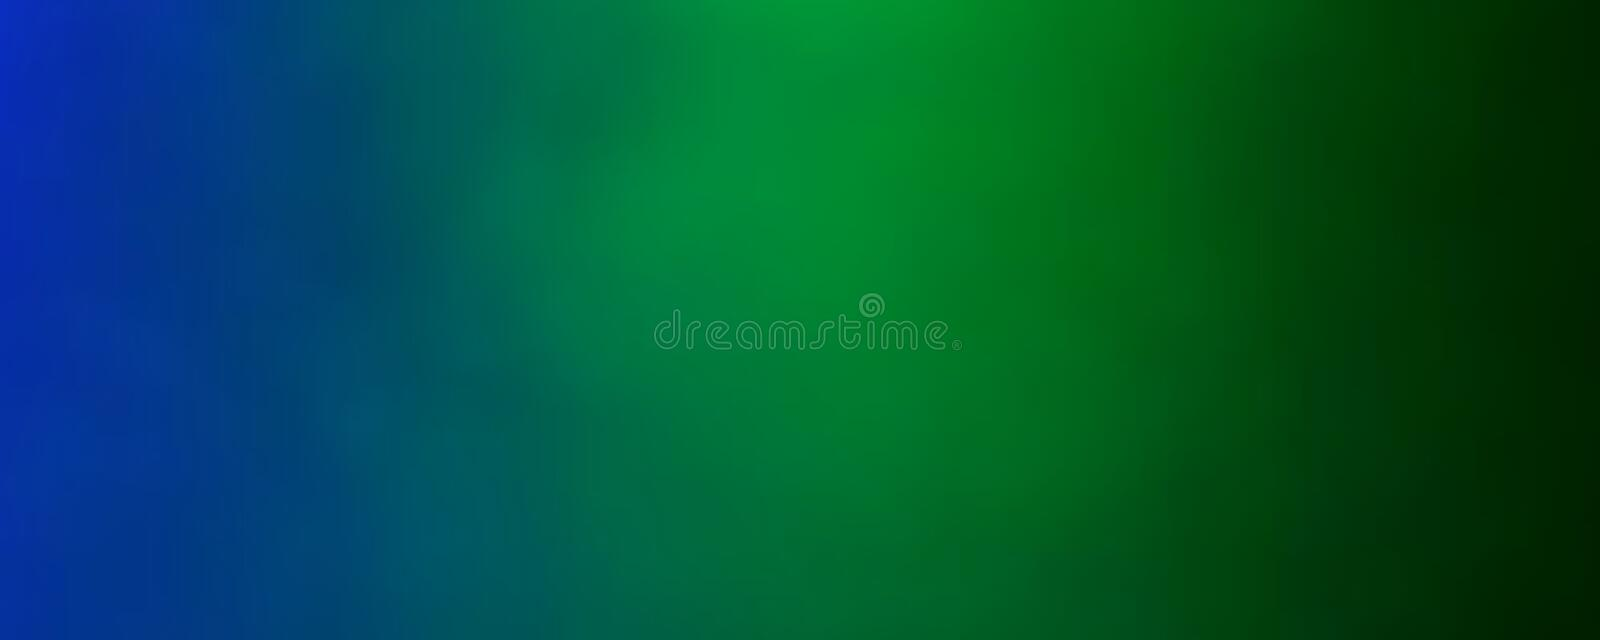 Blue And Green Background. Blue and green fading to black banner wallpaper background illustration vector illustration